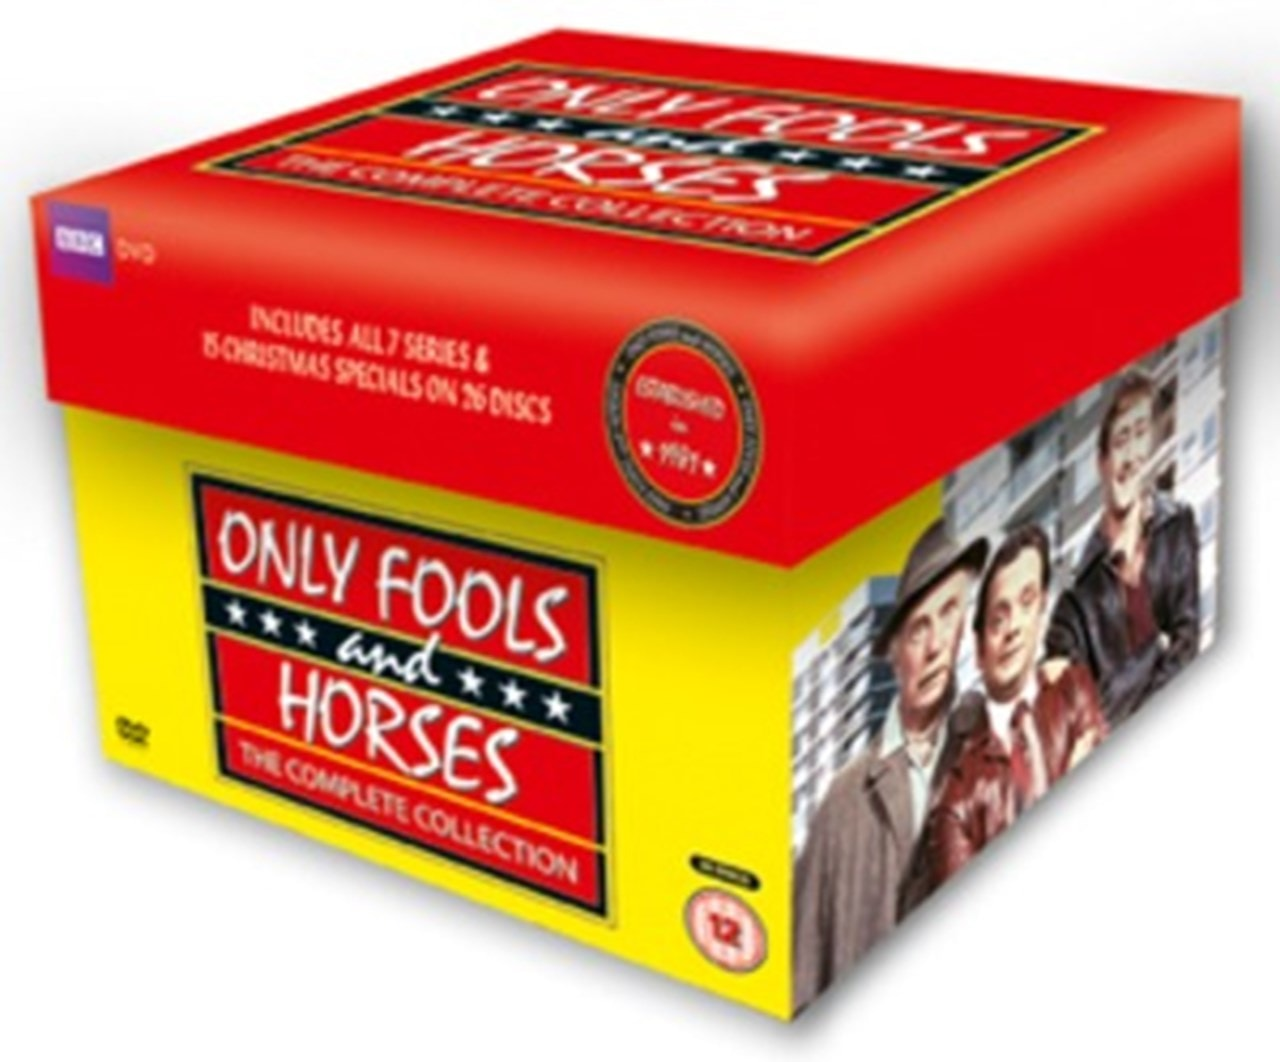 Only Fools and Horses: The Complete Collection - 1